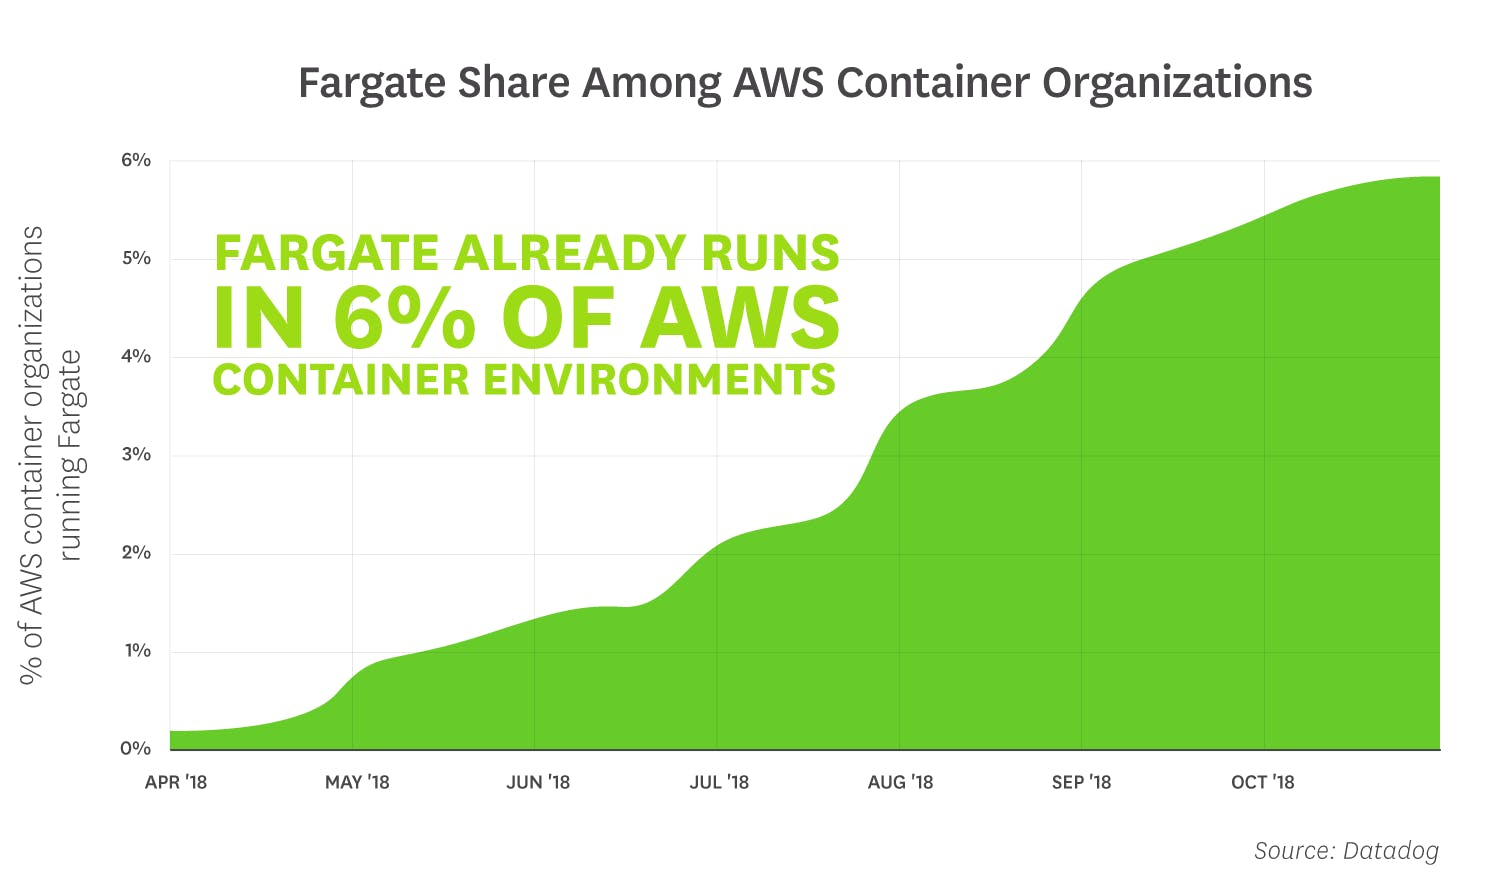 container-orchestration-2018/orchestration-2018-fact-4-v2